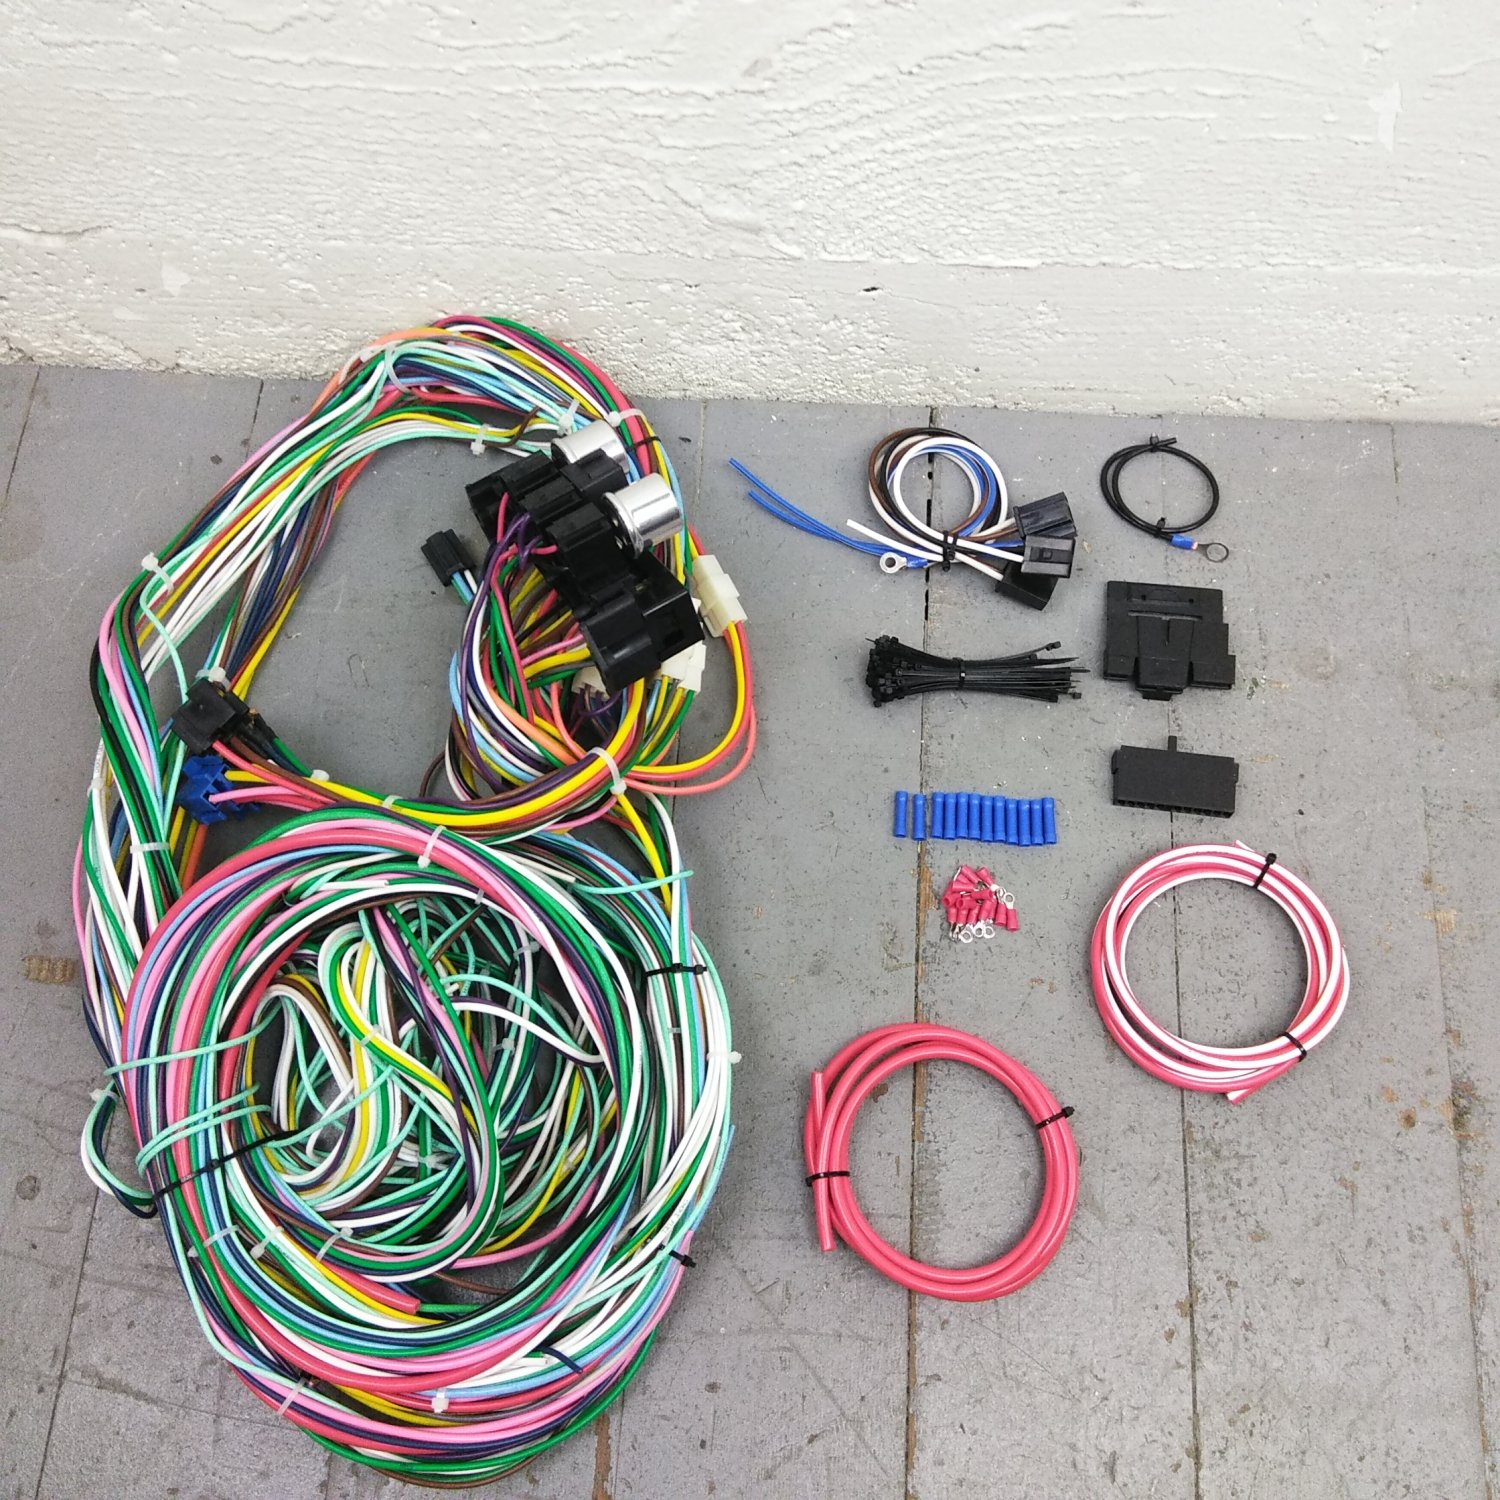 1951 1956 Cadillac And Oldsmobile Wire Harness Upgrade Kit Fits 2001 Eldorado Wiring Painless New Bar Product Description C